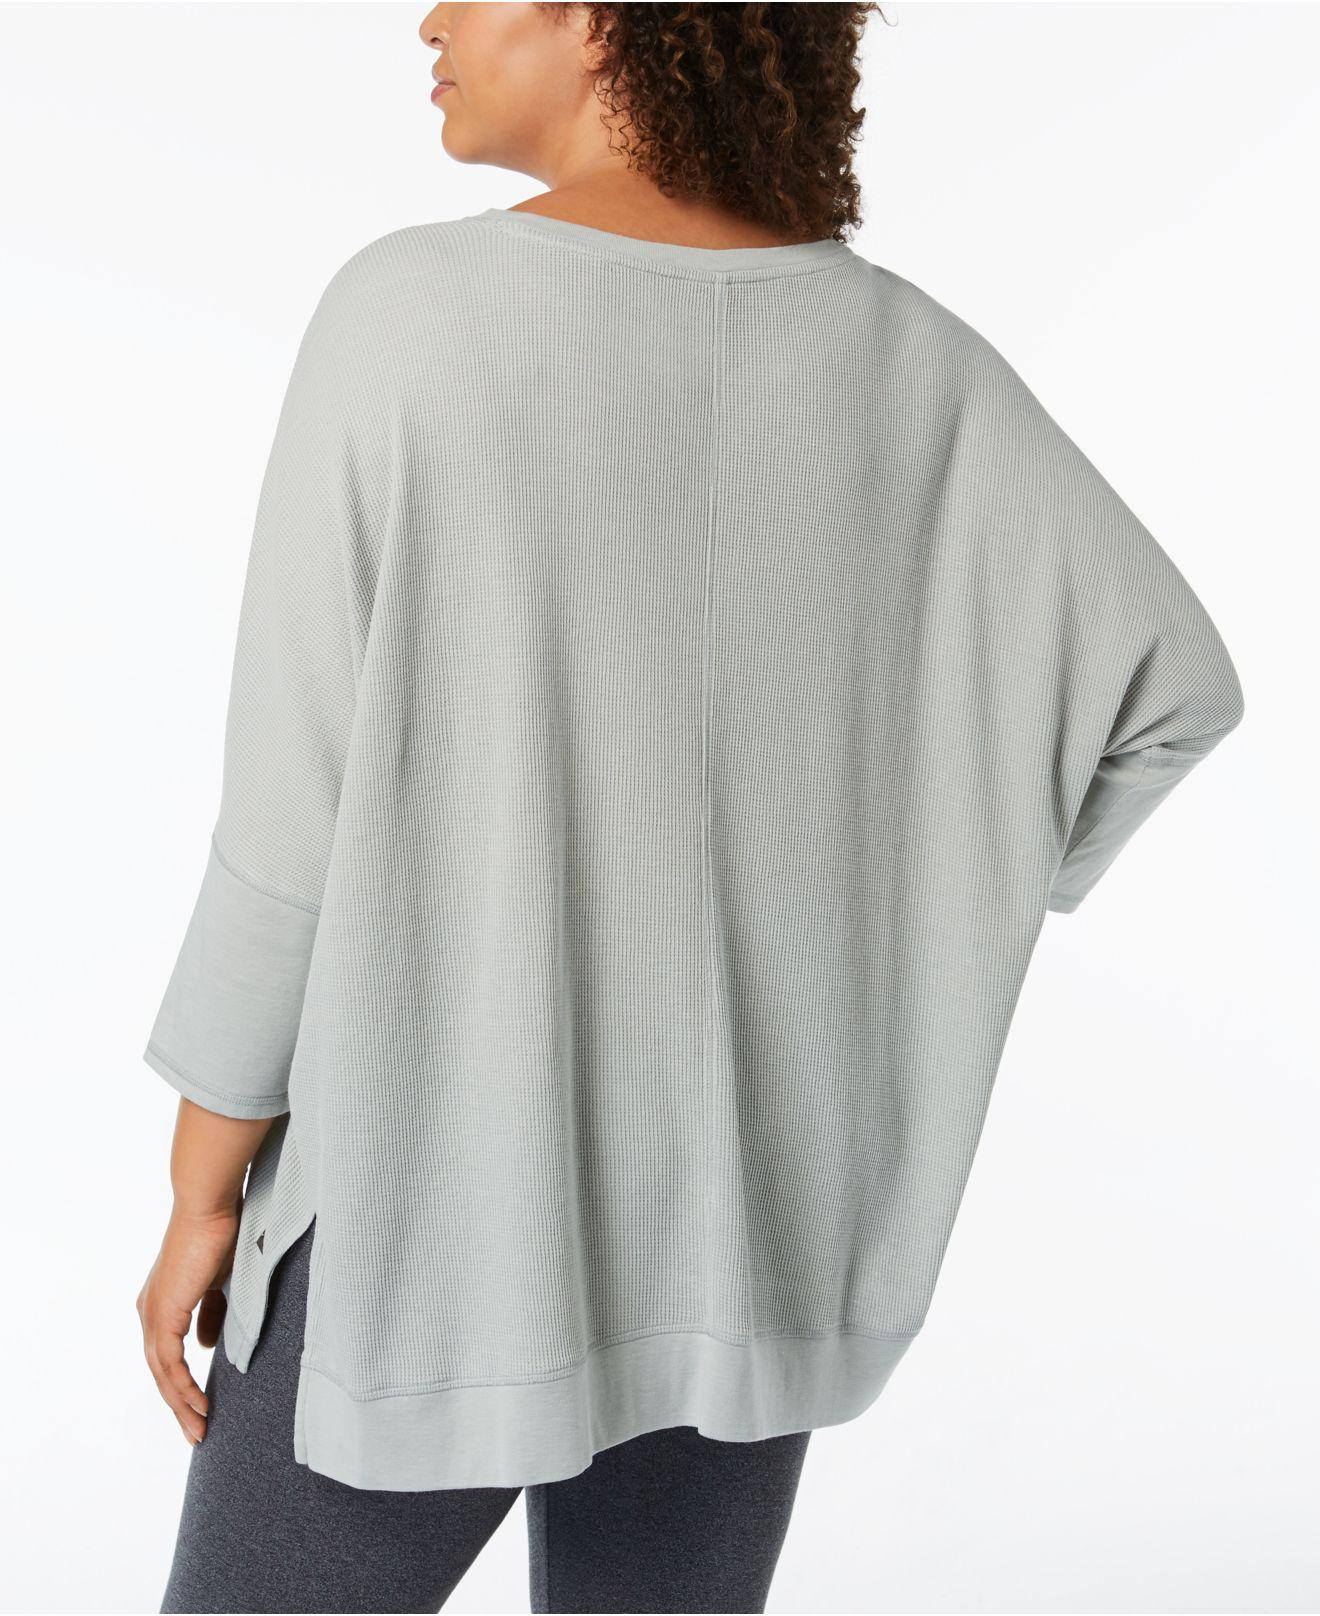 ab136db8580 Lyst - Calvin Klein Performance Plus Size 3 4-sleeve Top in Gray